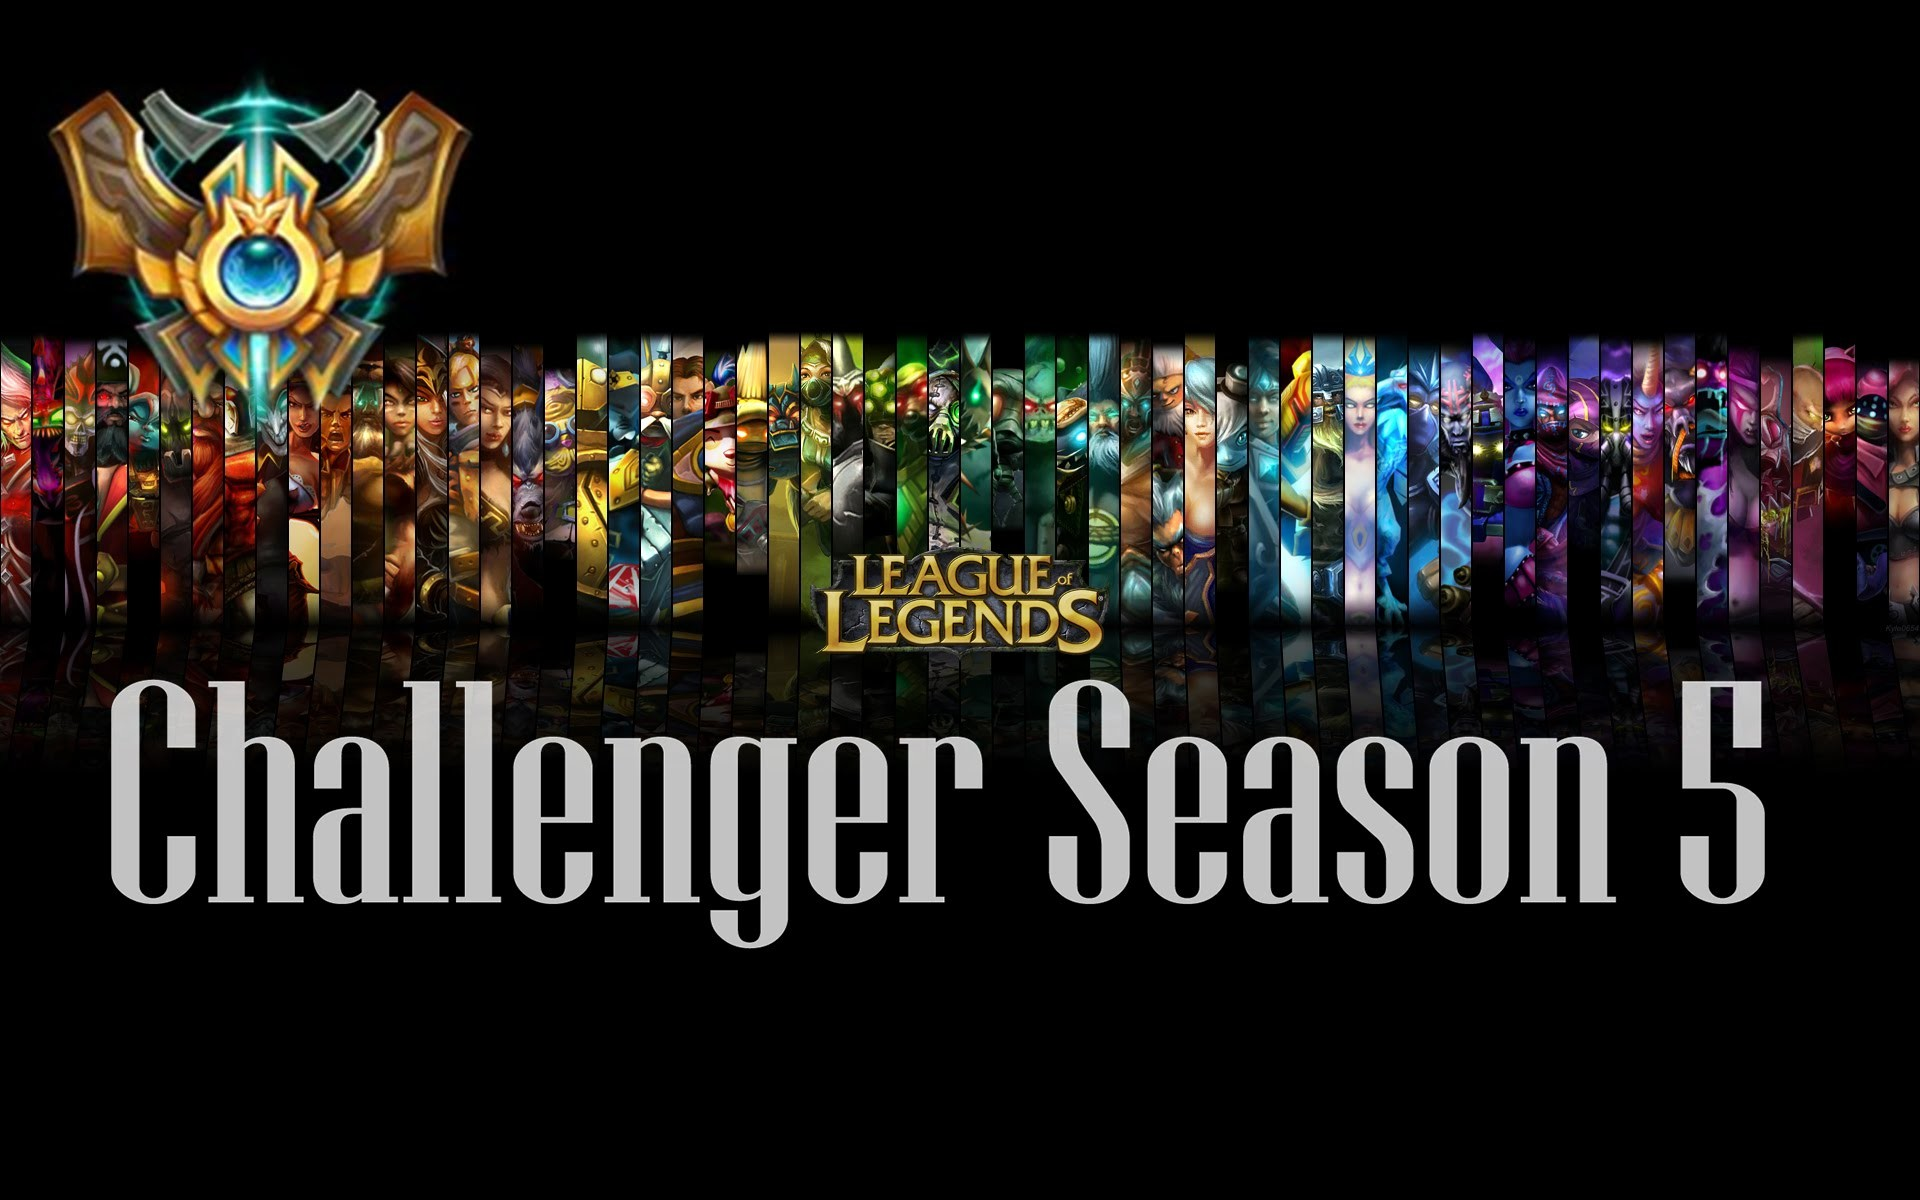 League of Legends Season 5 Challenger Game #3 Sona Support